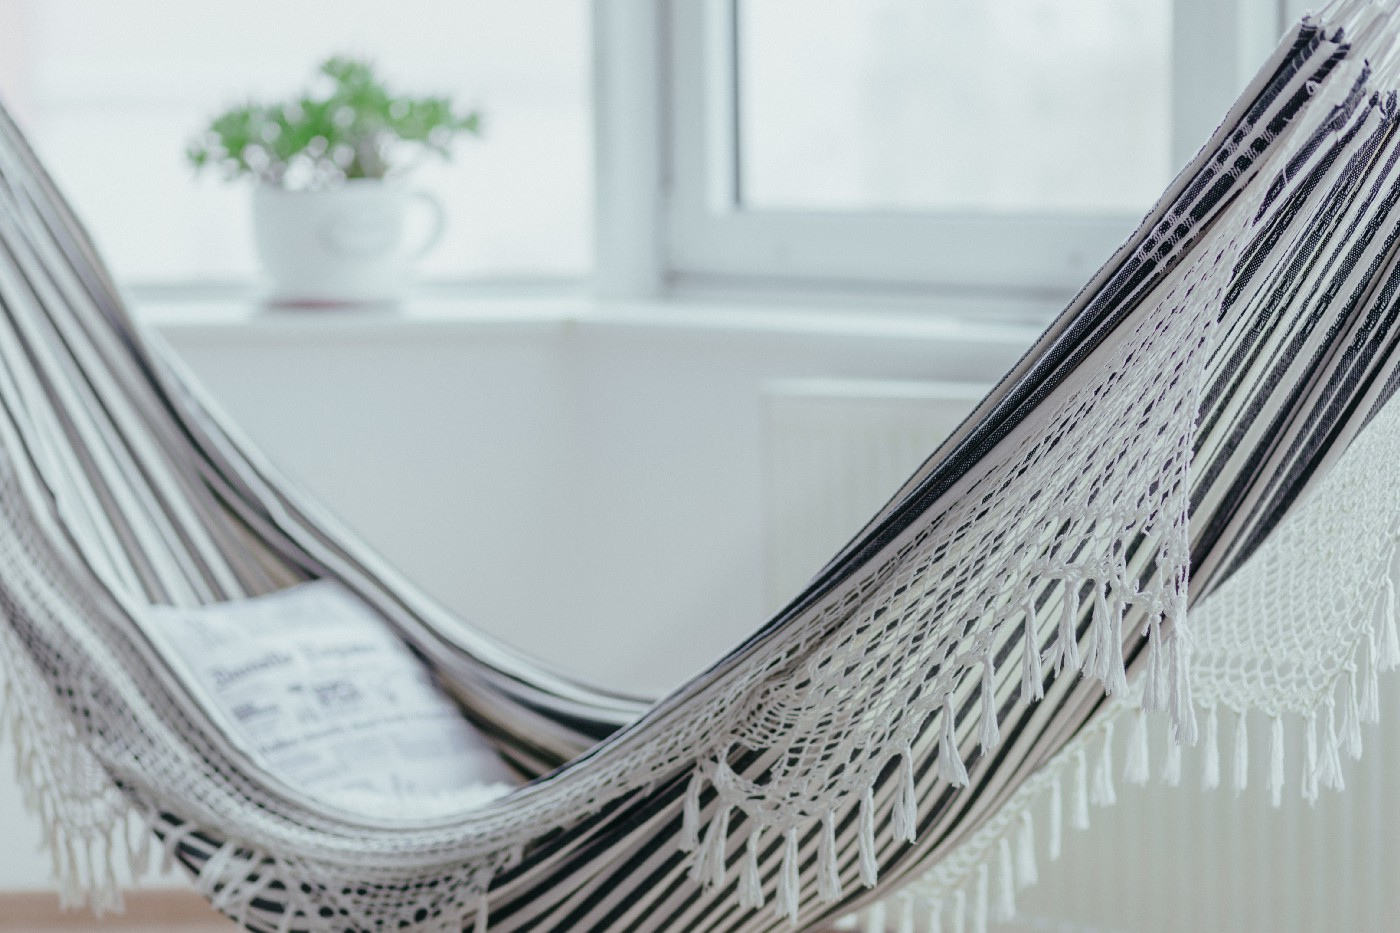 A grey and white fringed hammock with pillow inside a light-filled room with windows, a plant in a white vase.